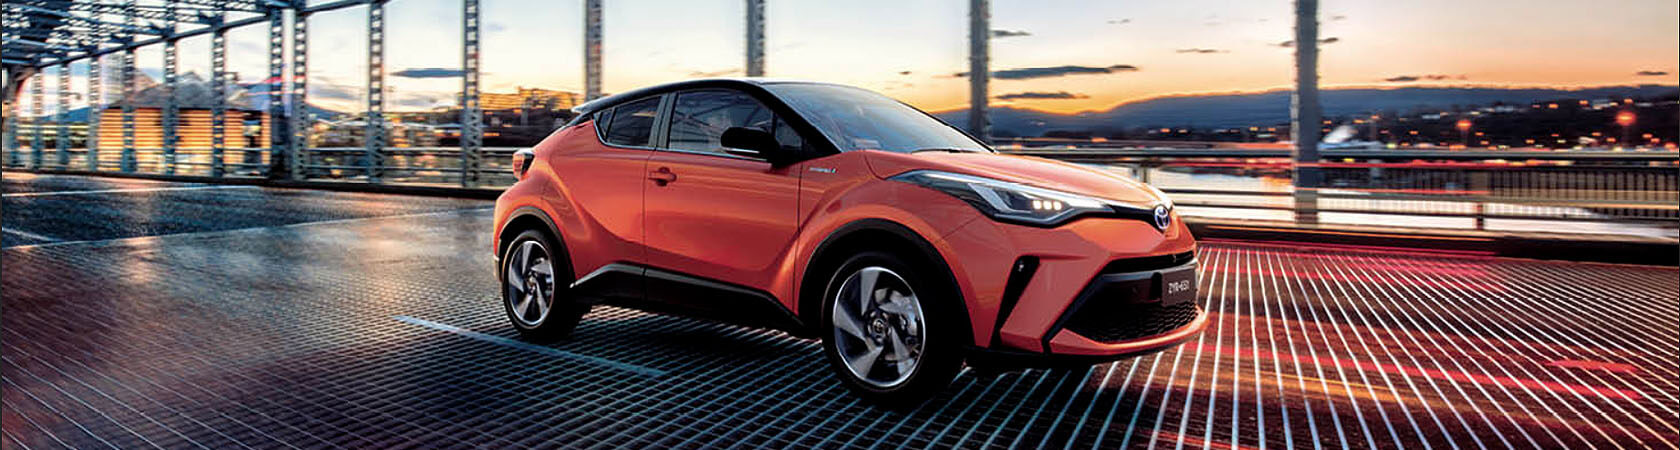 Warrnambool Toyota C-HR